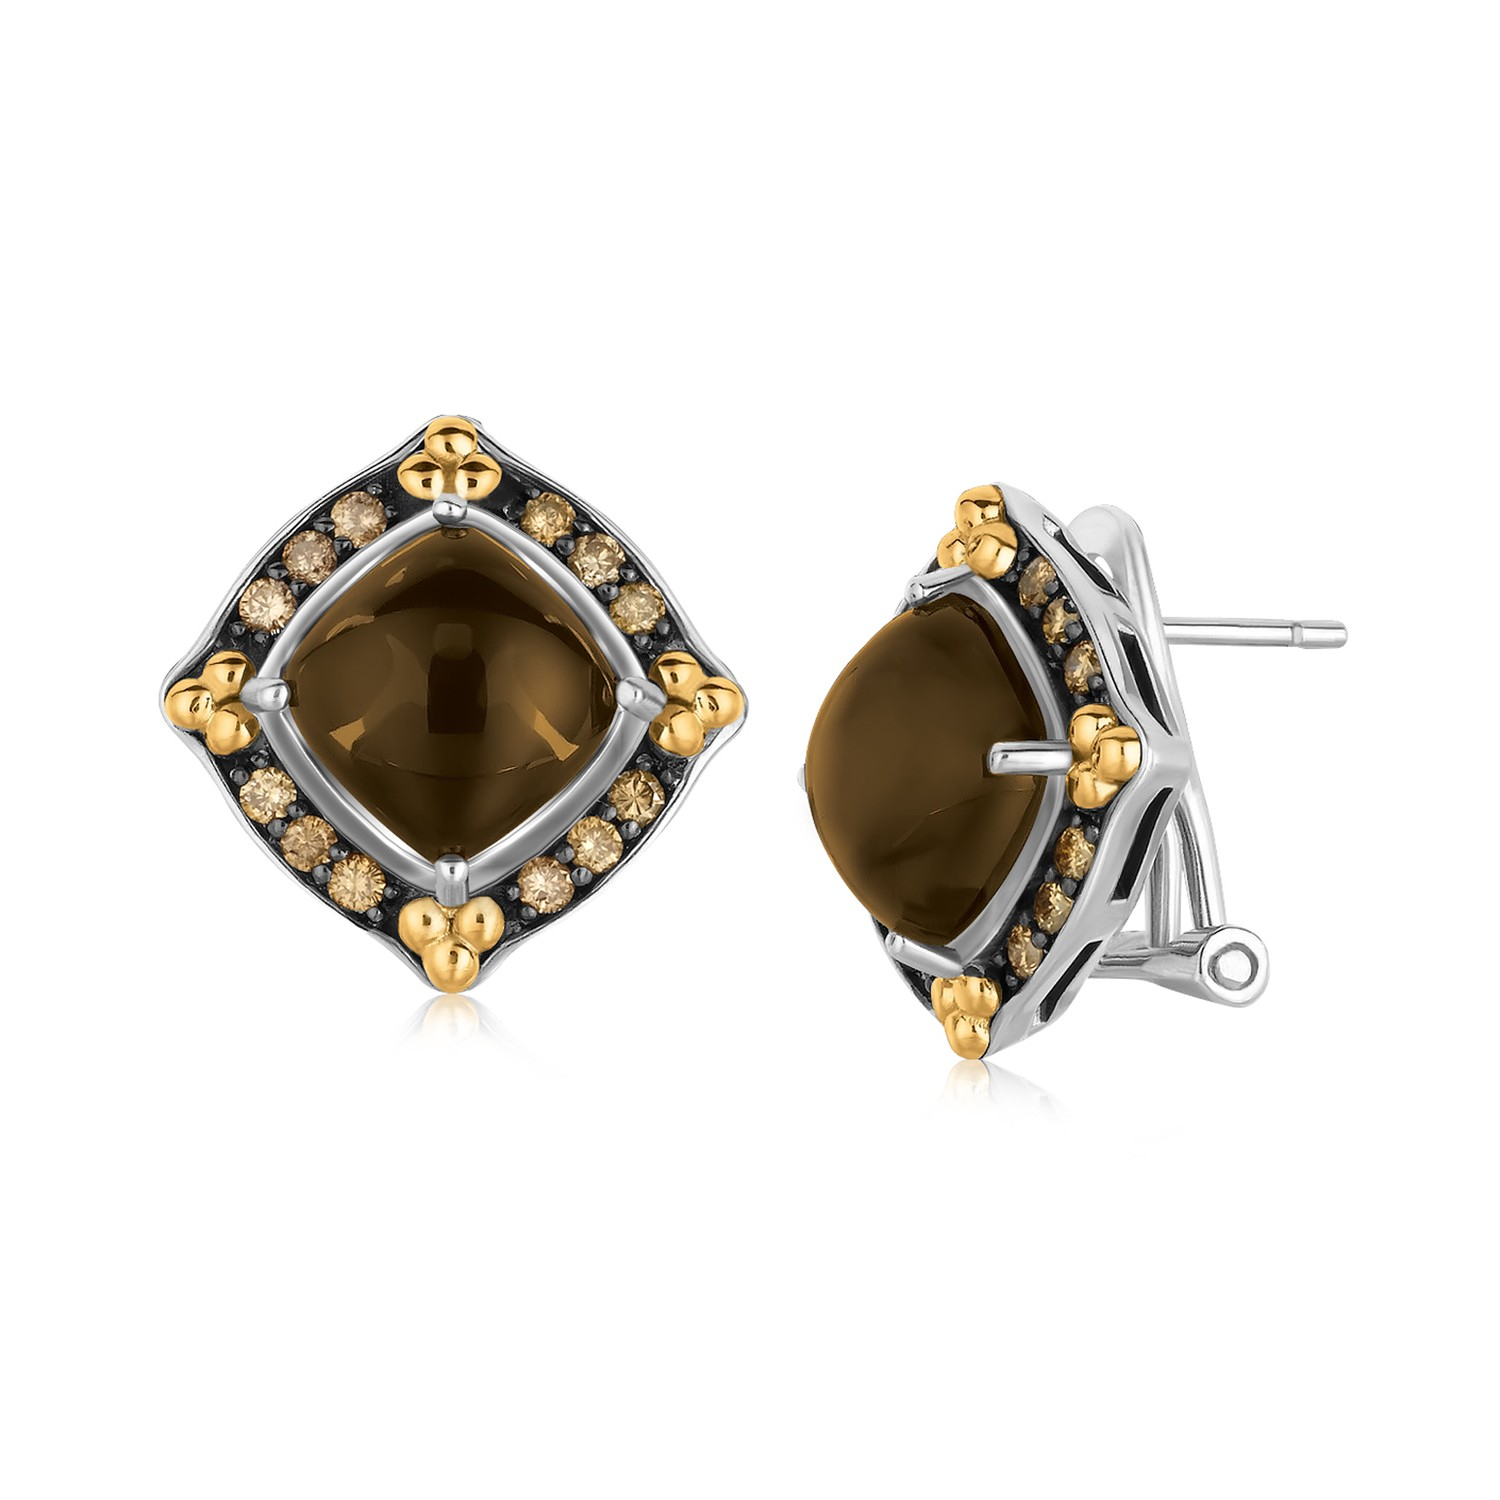 18K Yellow Gold and Sterling Silver Smokey Quartz Earrings with Coffee Diamonds